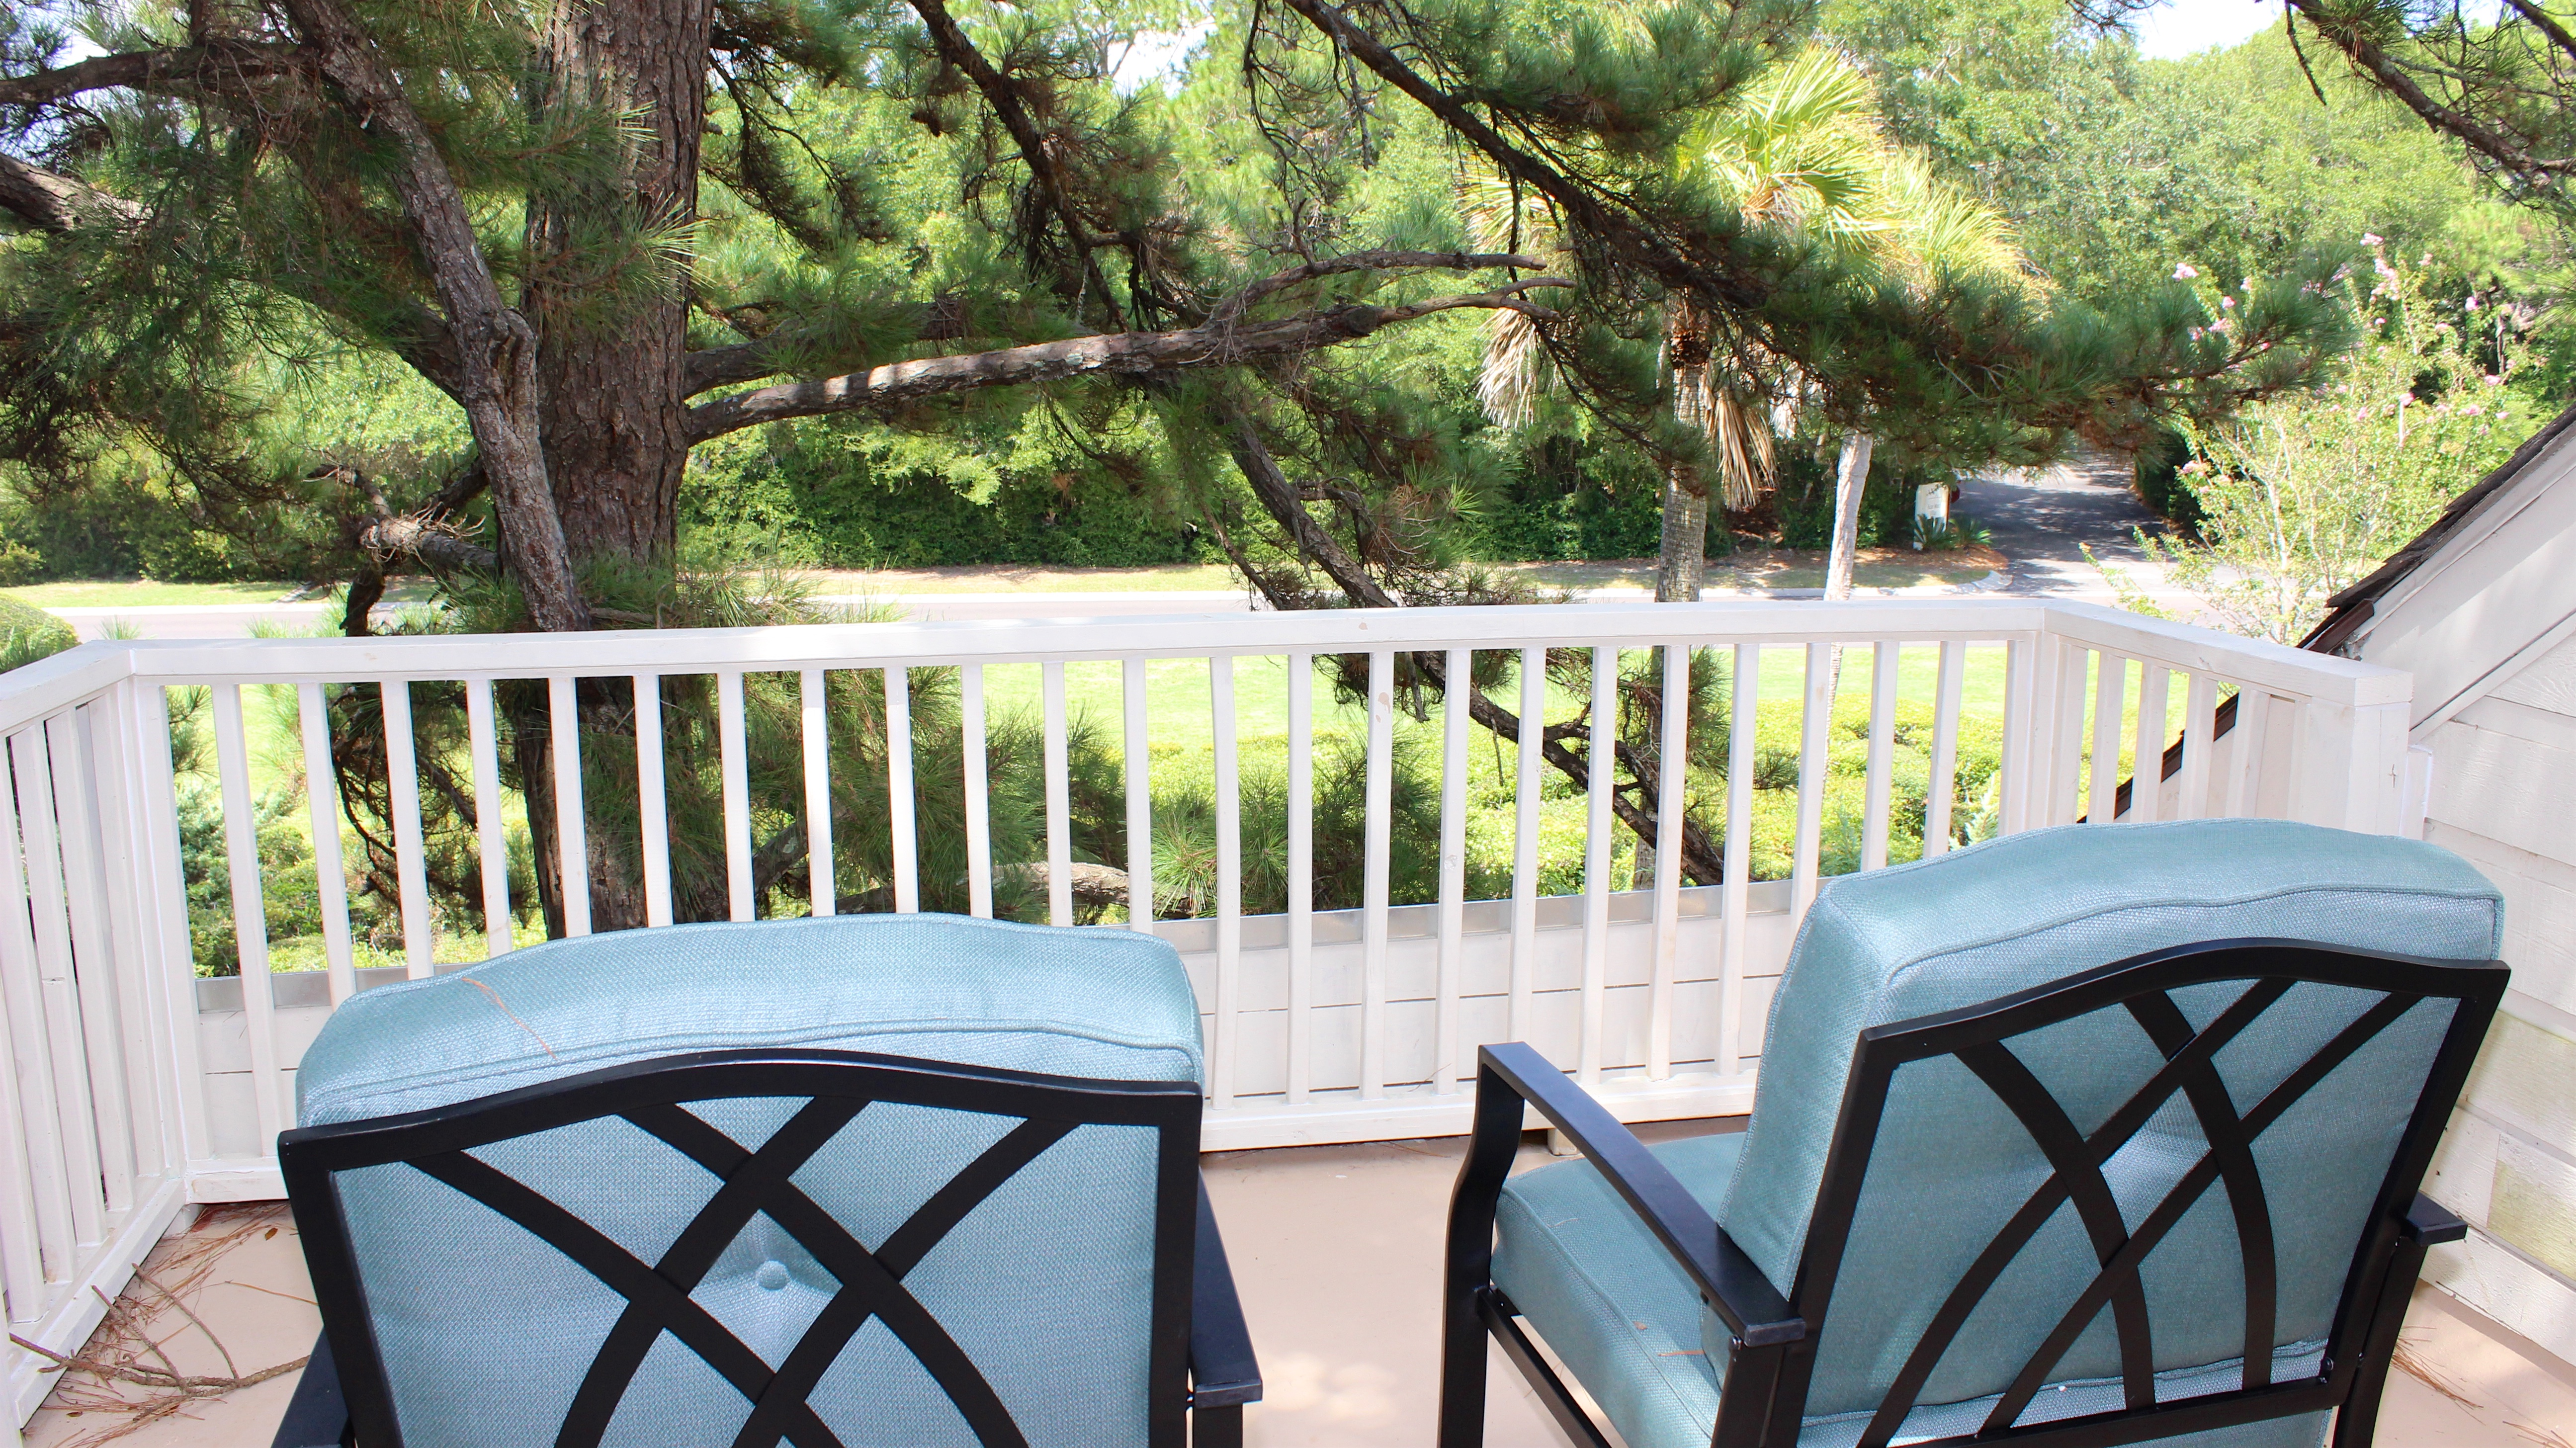 The sun deck is outfitted with cushioned chairs has a tranquil view.